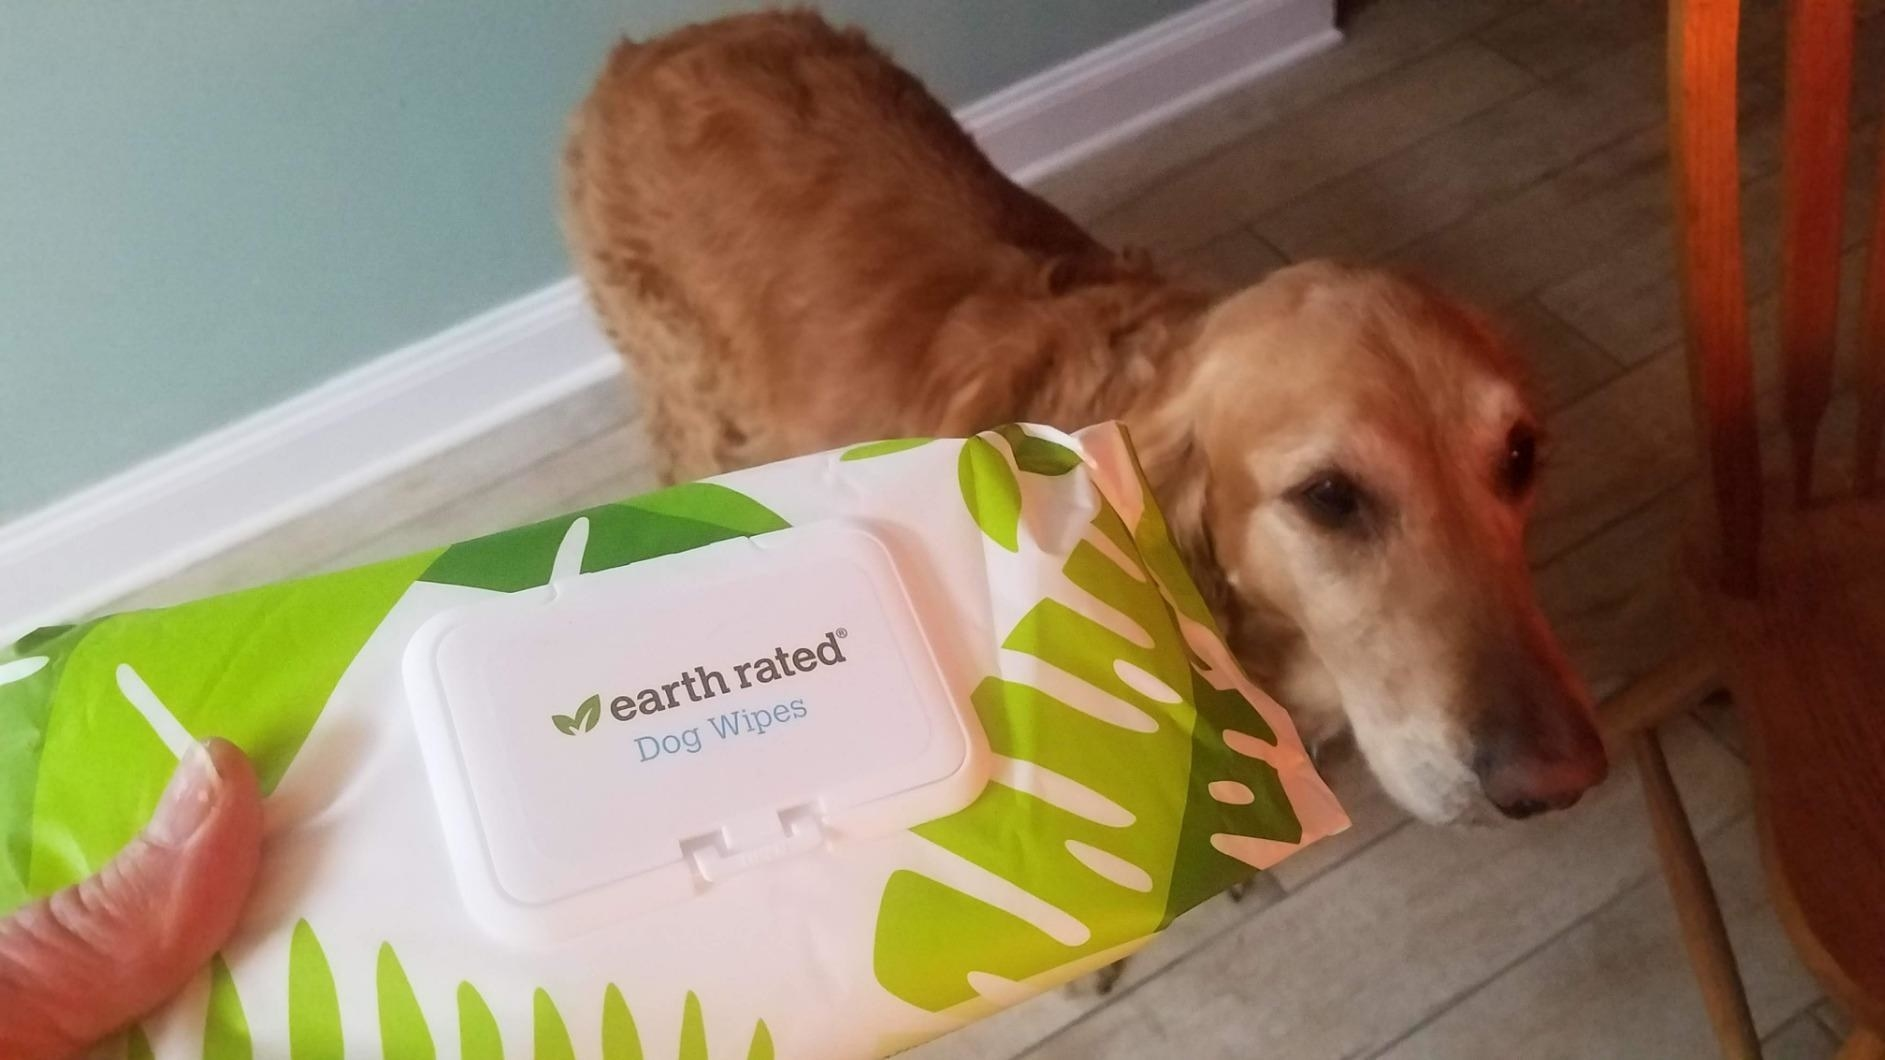 reviewer holding up a packet of earth rated dog wipes